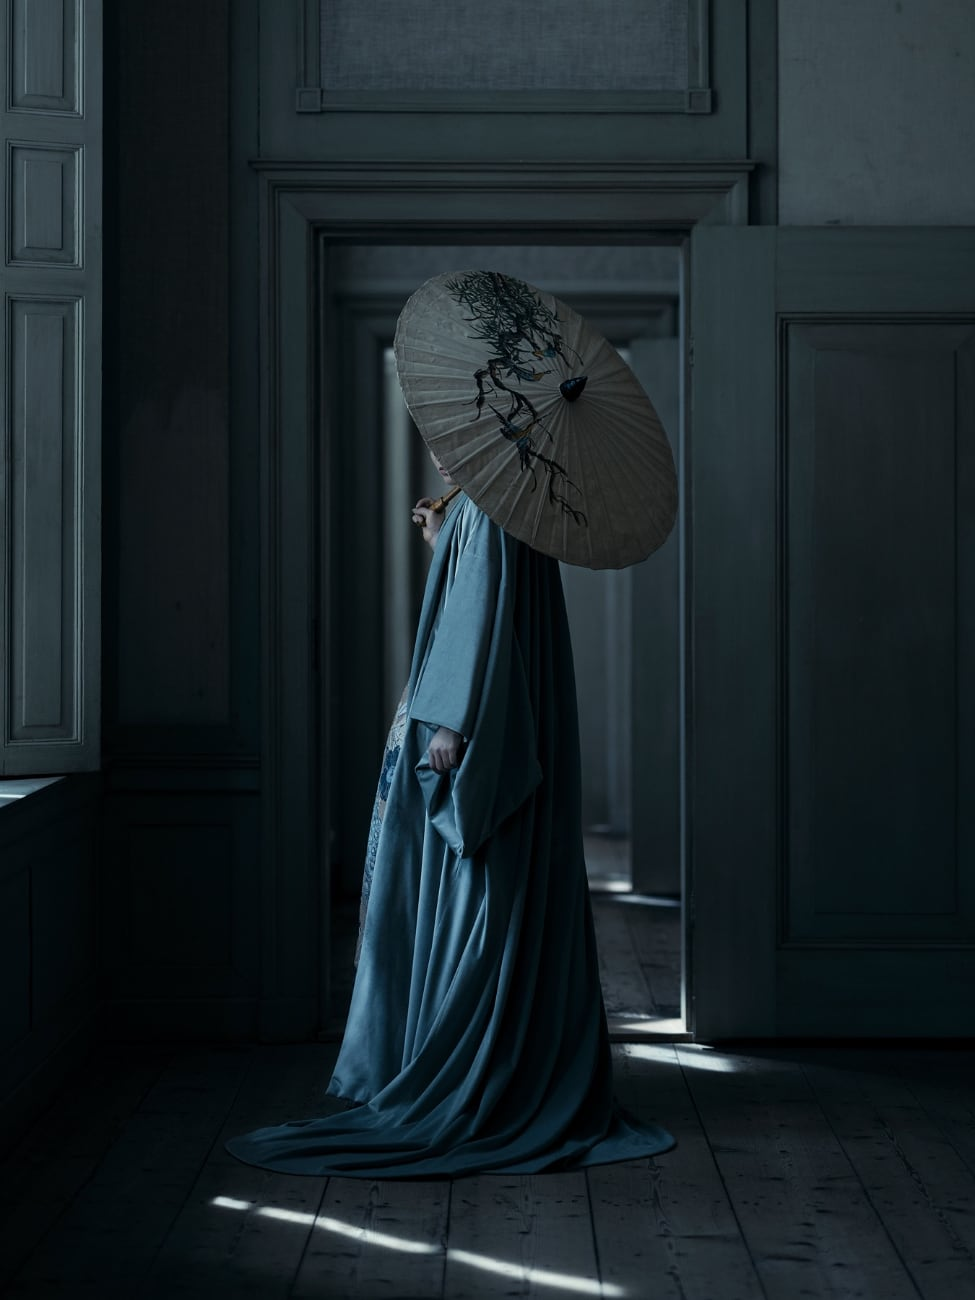 ©Ilona Langbroek, Longing for Insulinde #1, from the series Silent Loss, 2021, Courtesy of Bildhalle-1